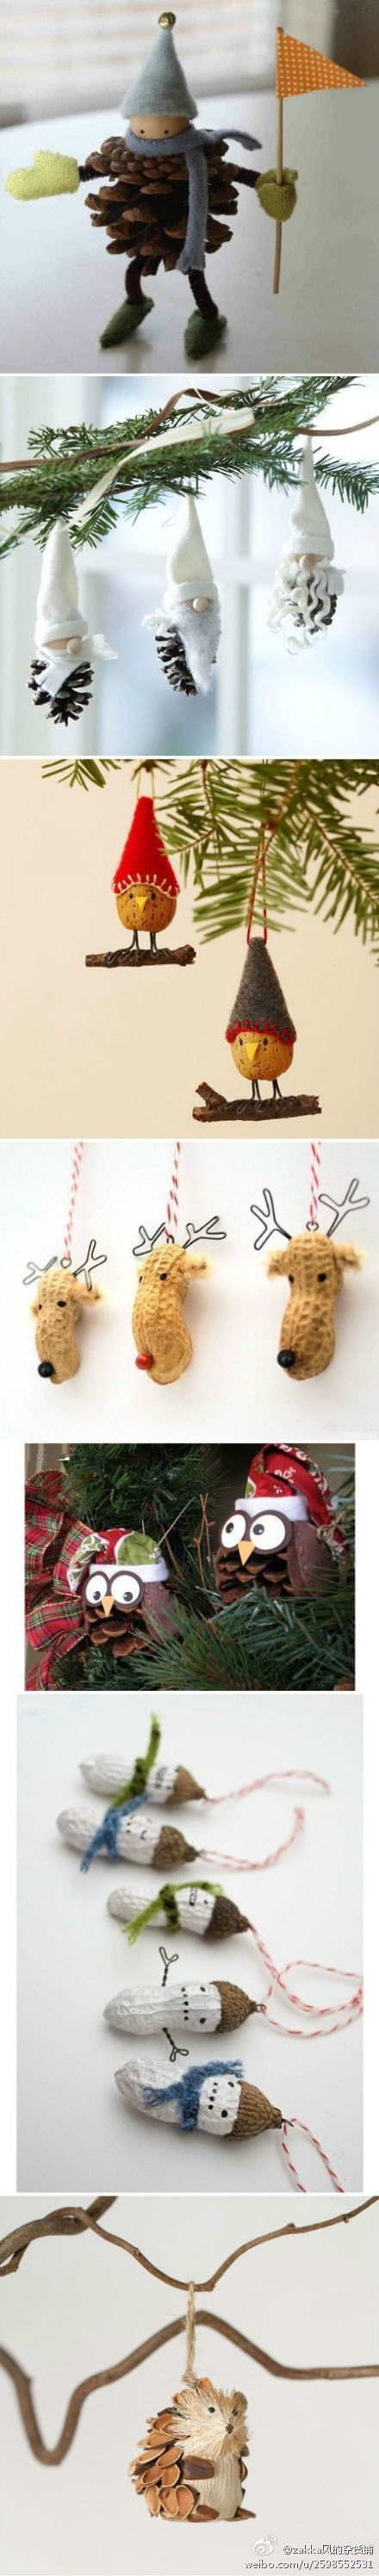 Cute Christmas crafts. I know where I can find some pine cones!